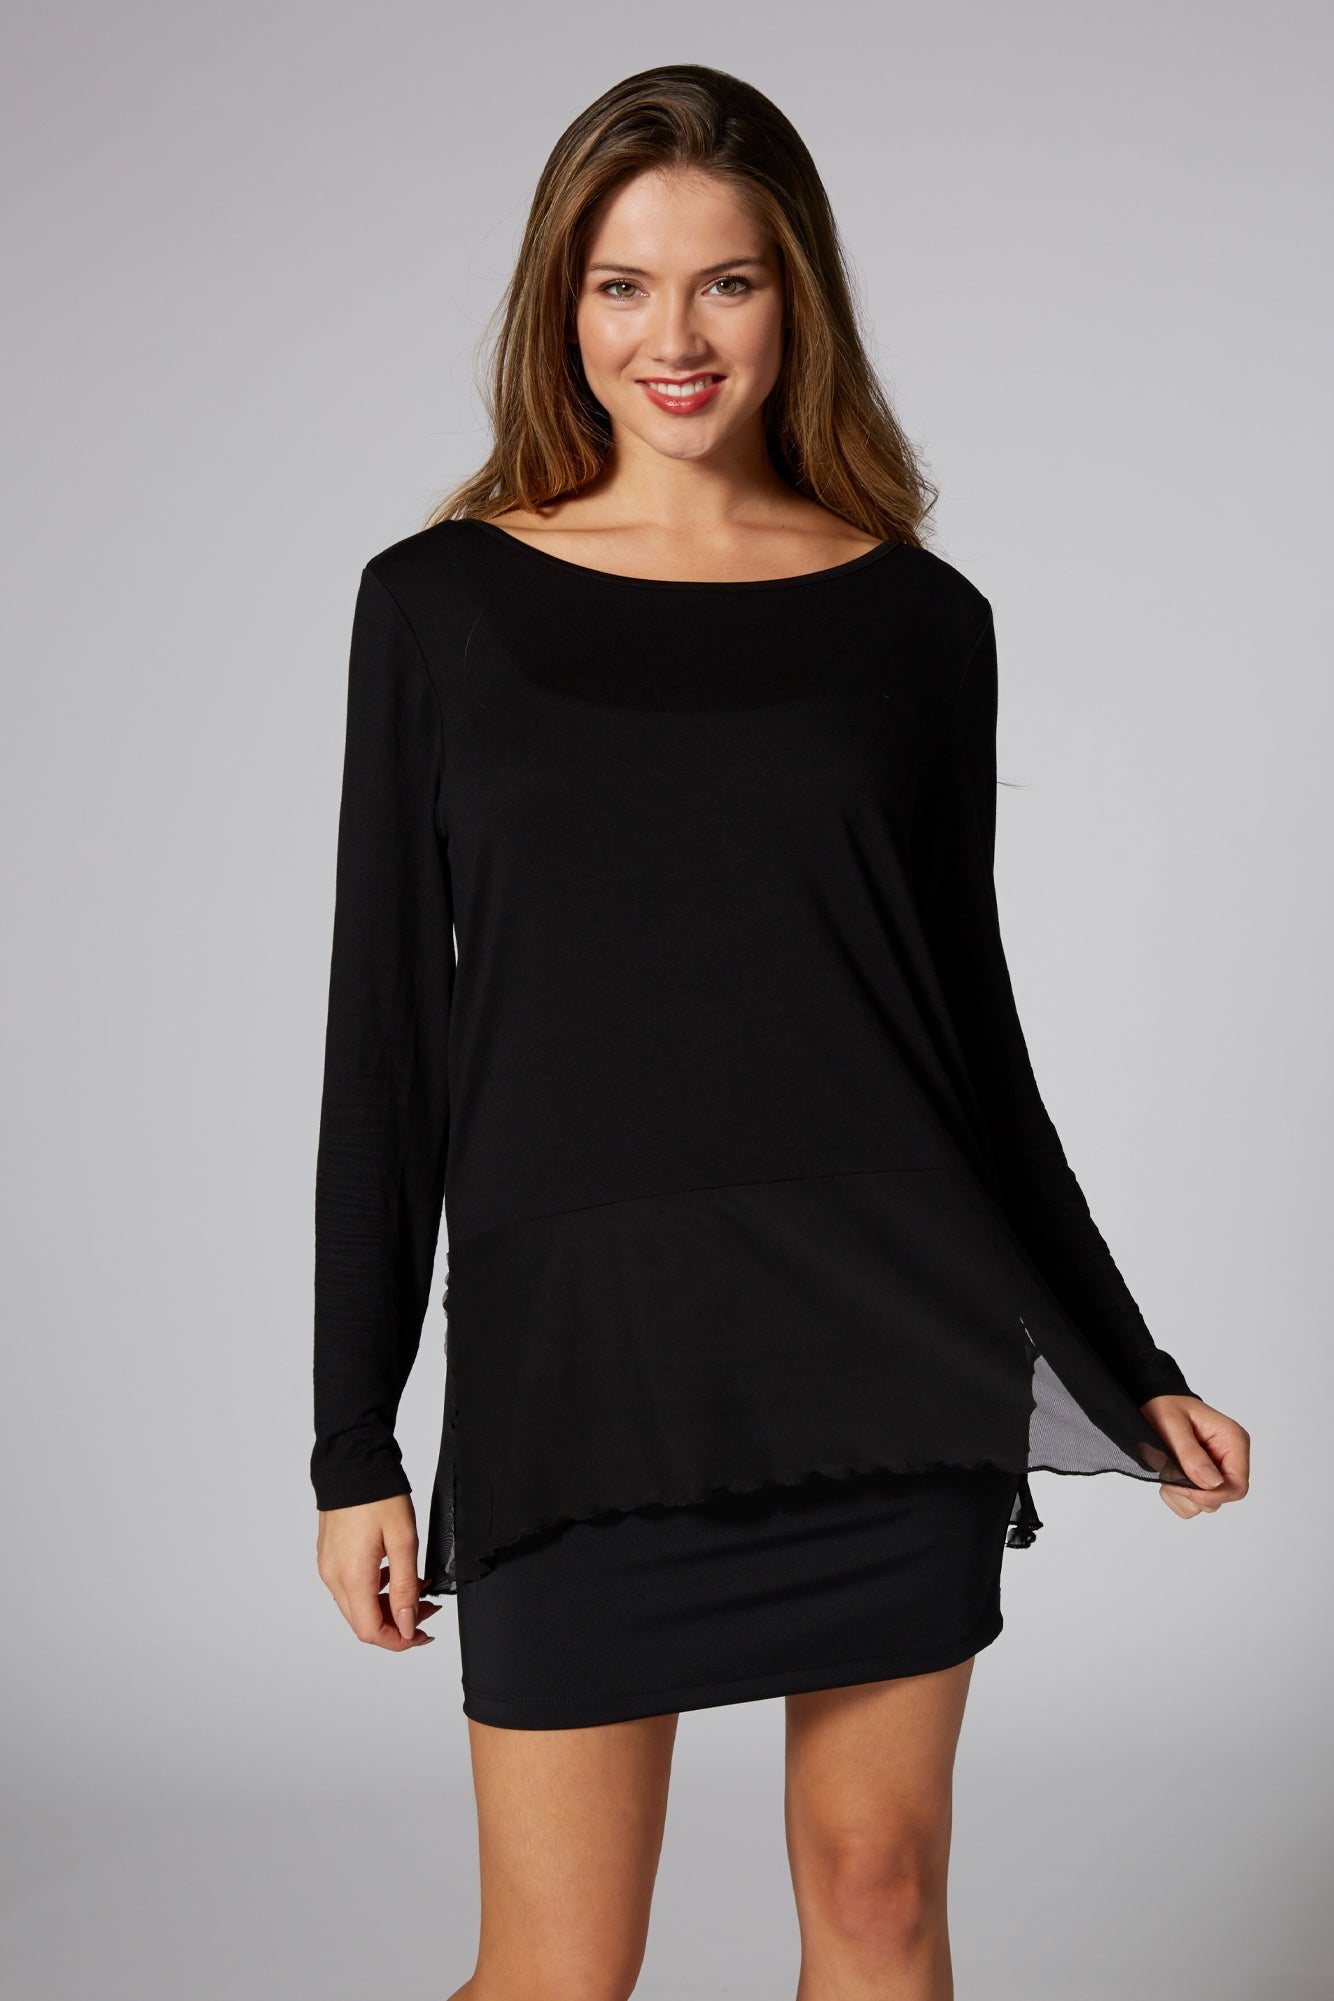 Pineapple Dancewear Women's Black Mesh Hem Long Sleeve Top